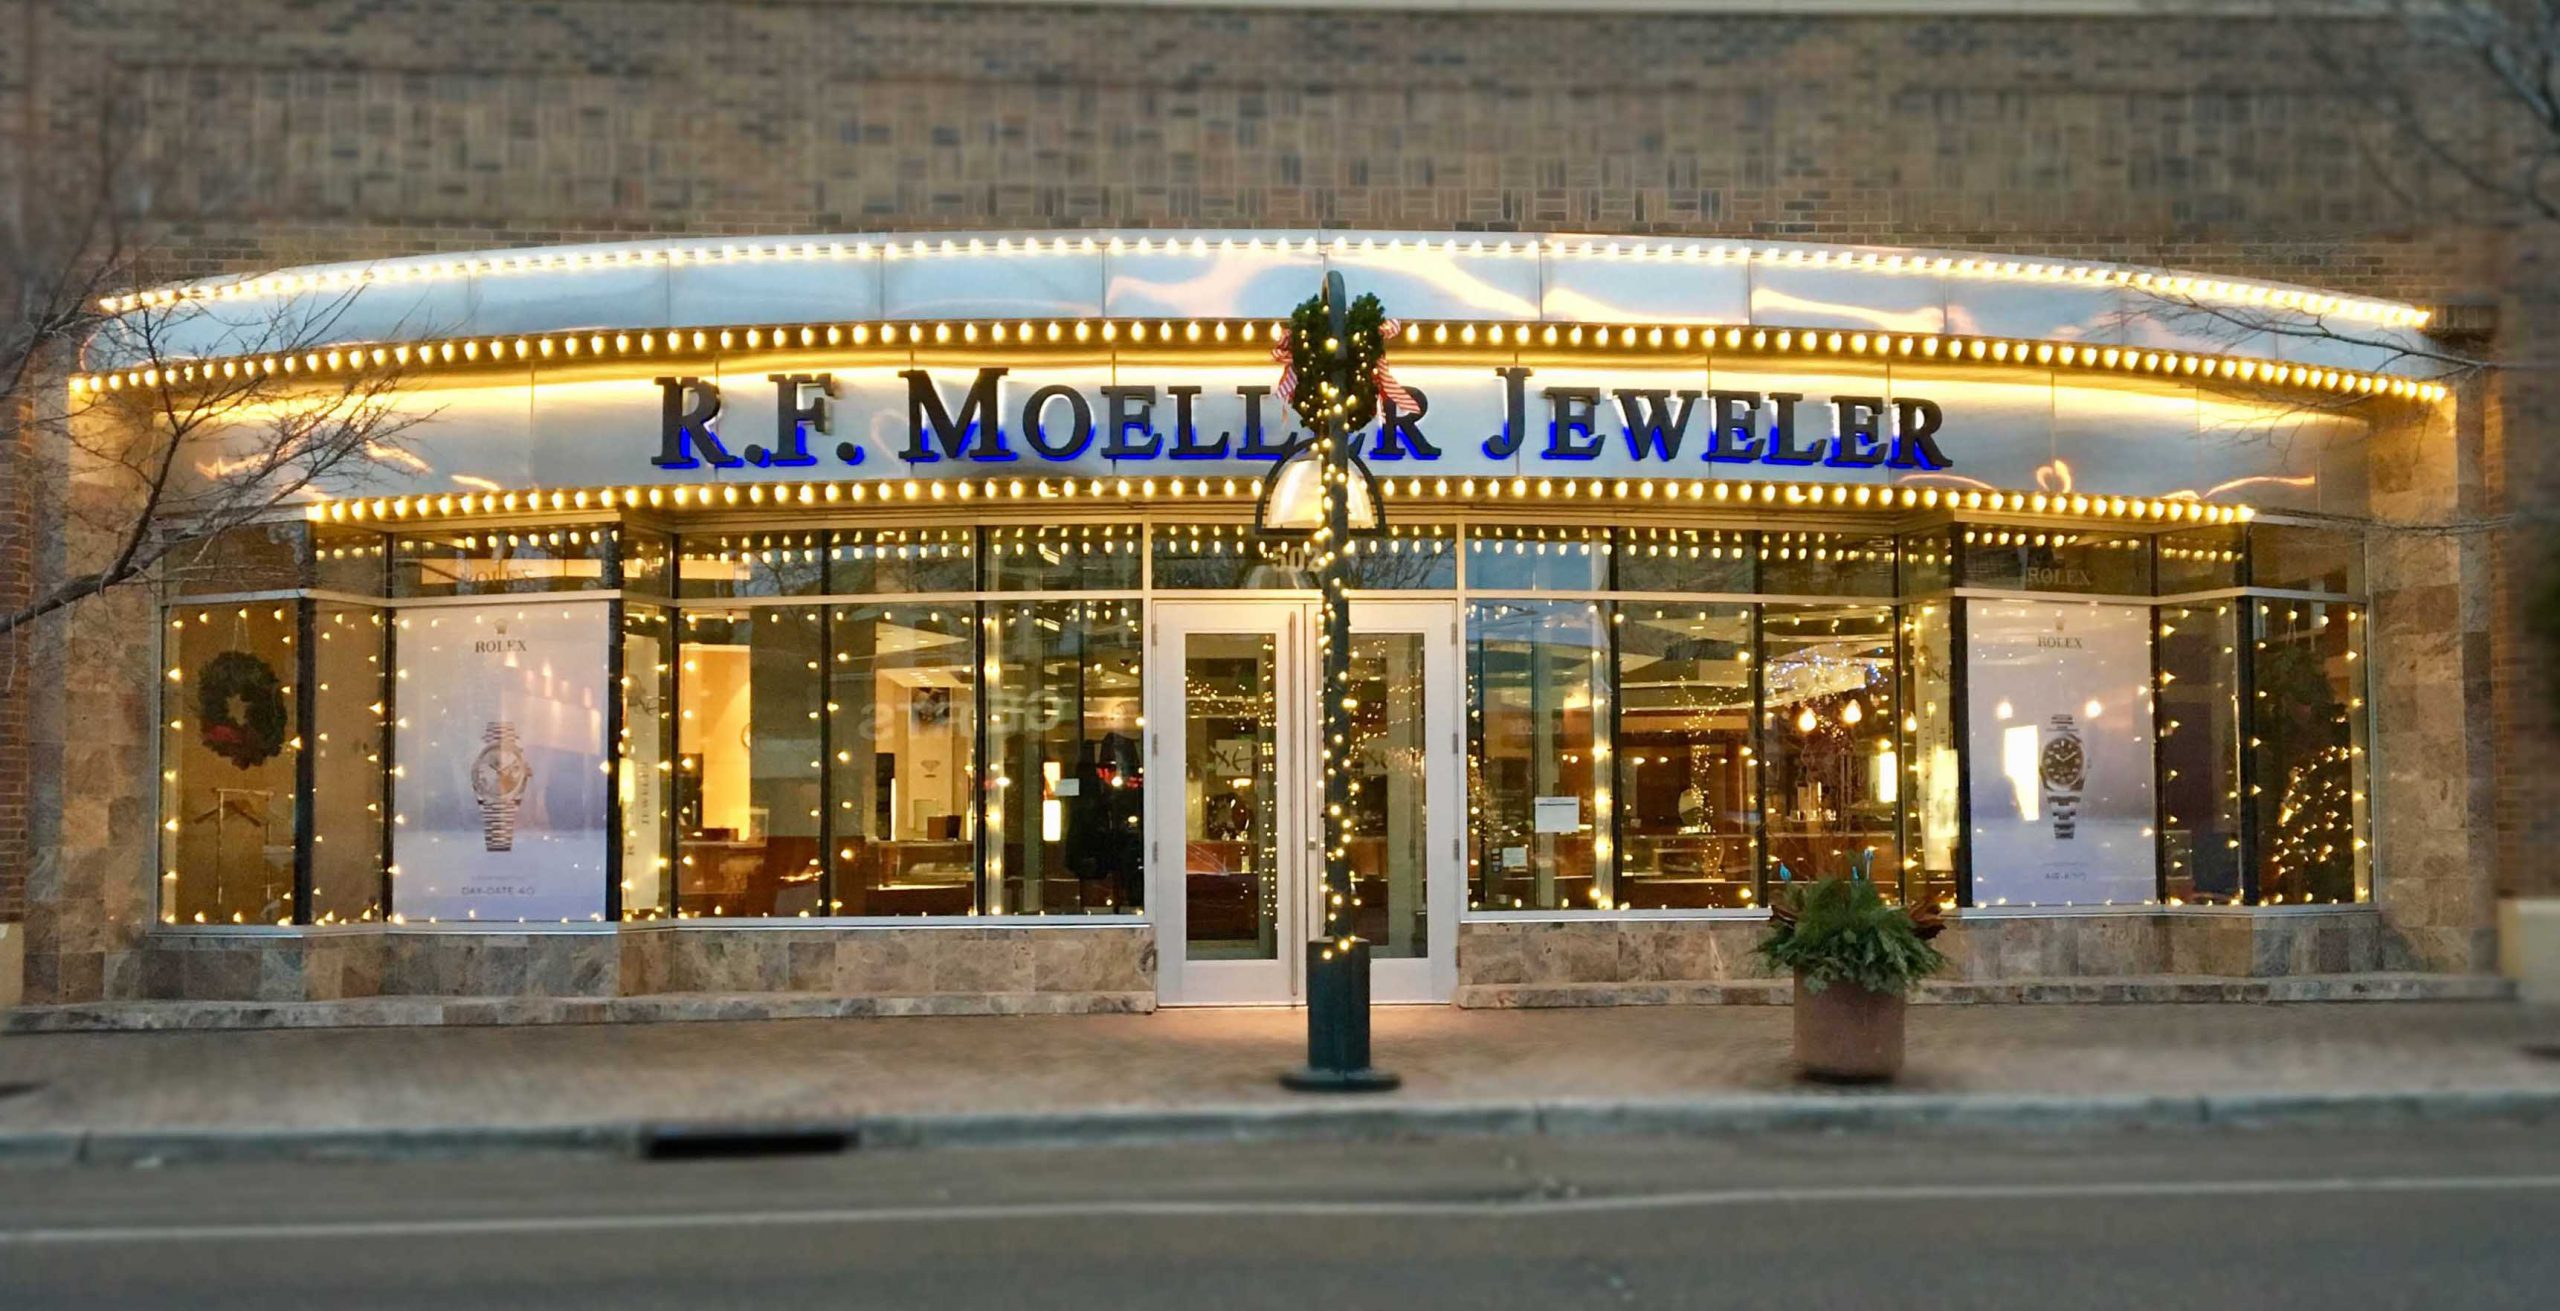 Happy Holidays from R.F. Moeller Jeweler